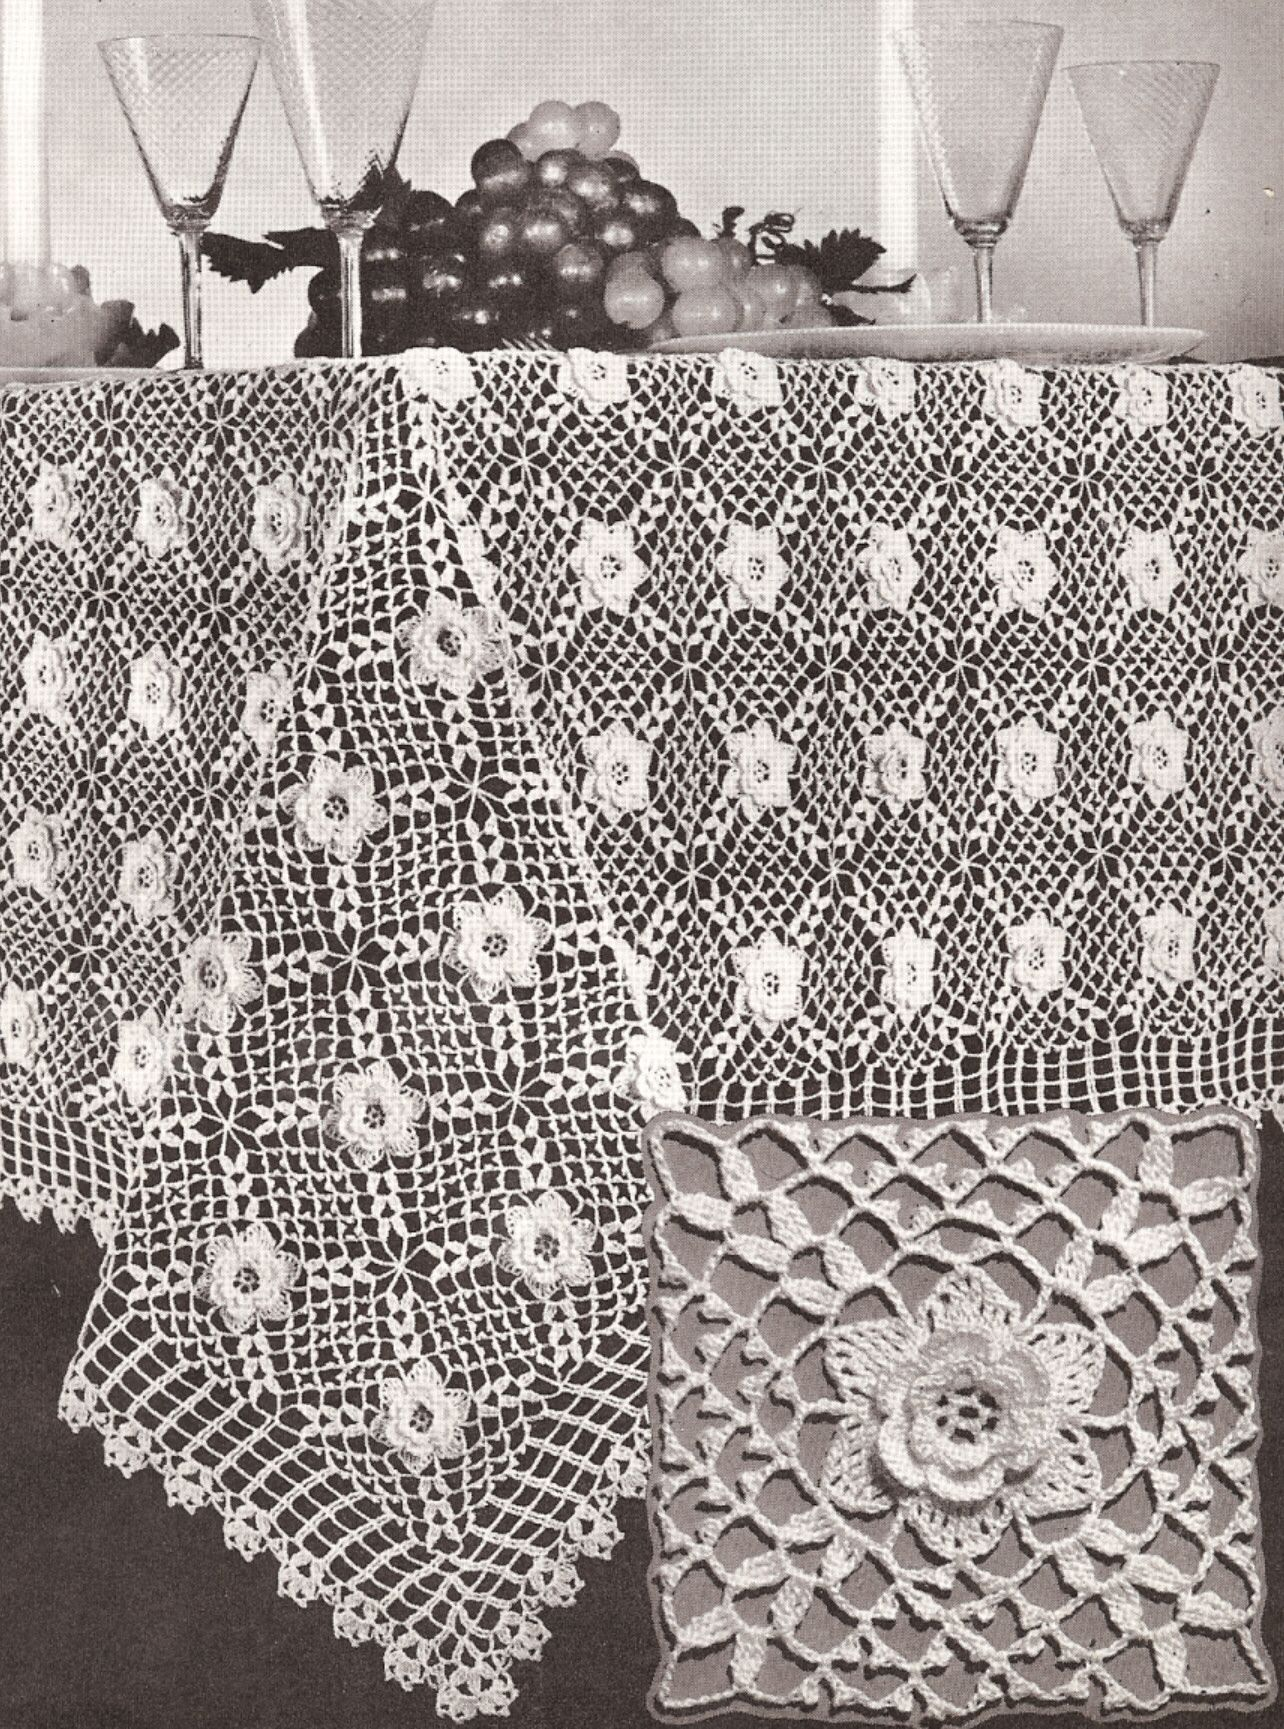 Vintage irish rose crochet motif tablecloth pattern crochet vintage irish rose crochet motif tablecloth pattern bankloansurffo Choice Image